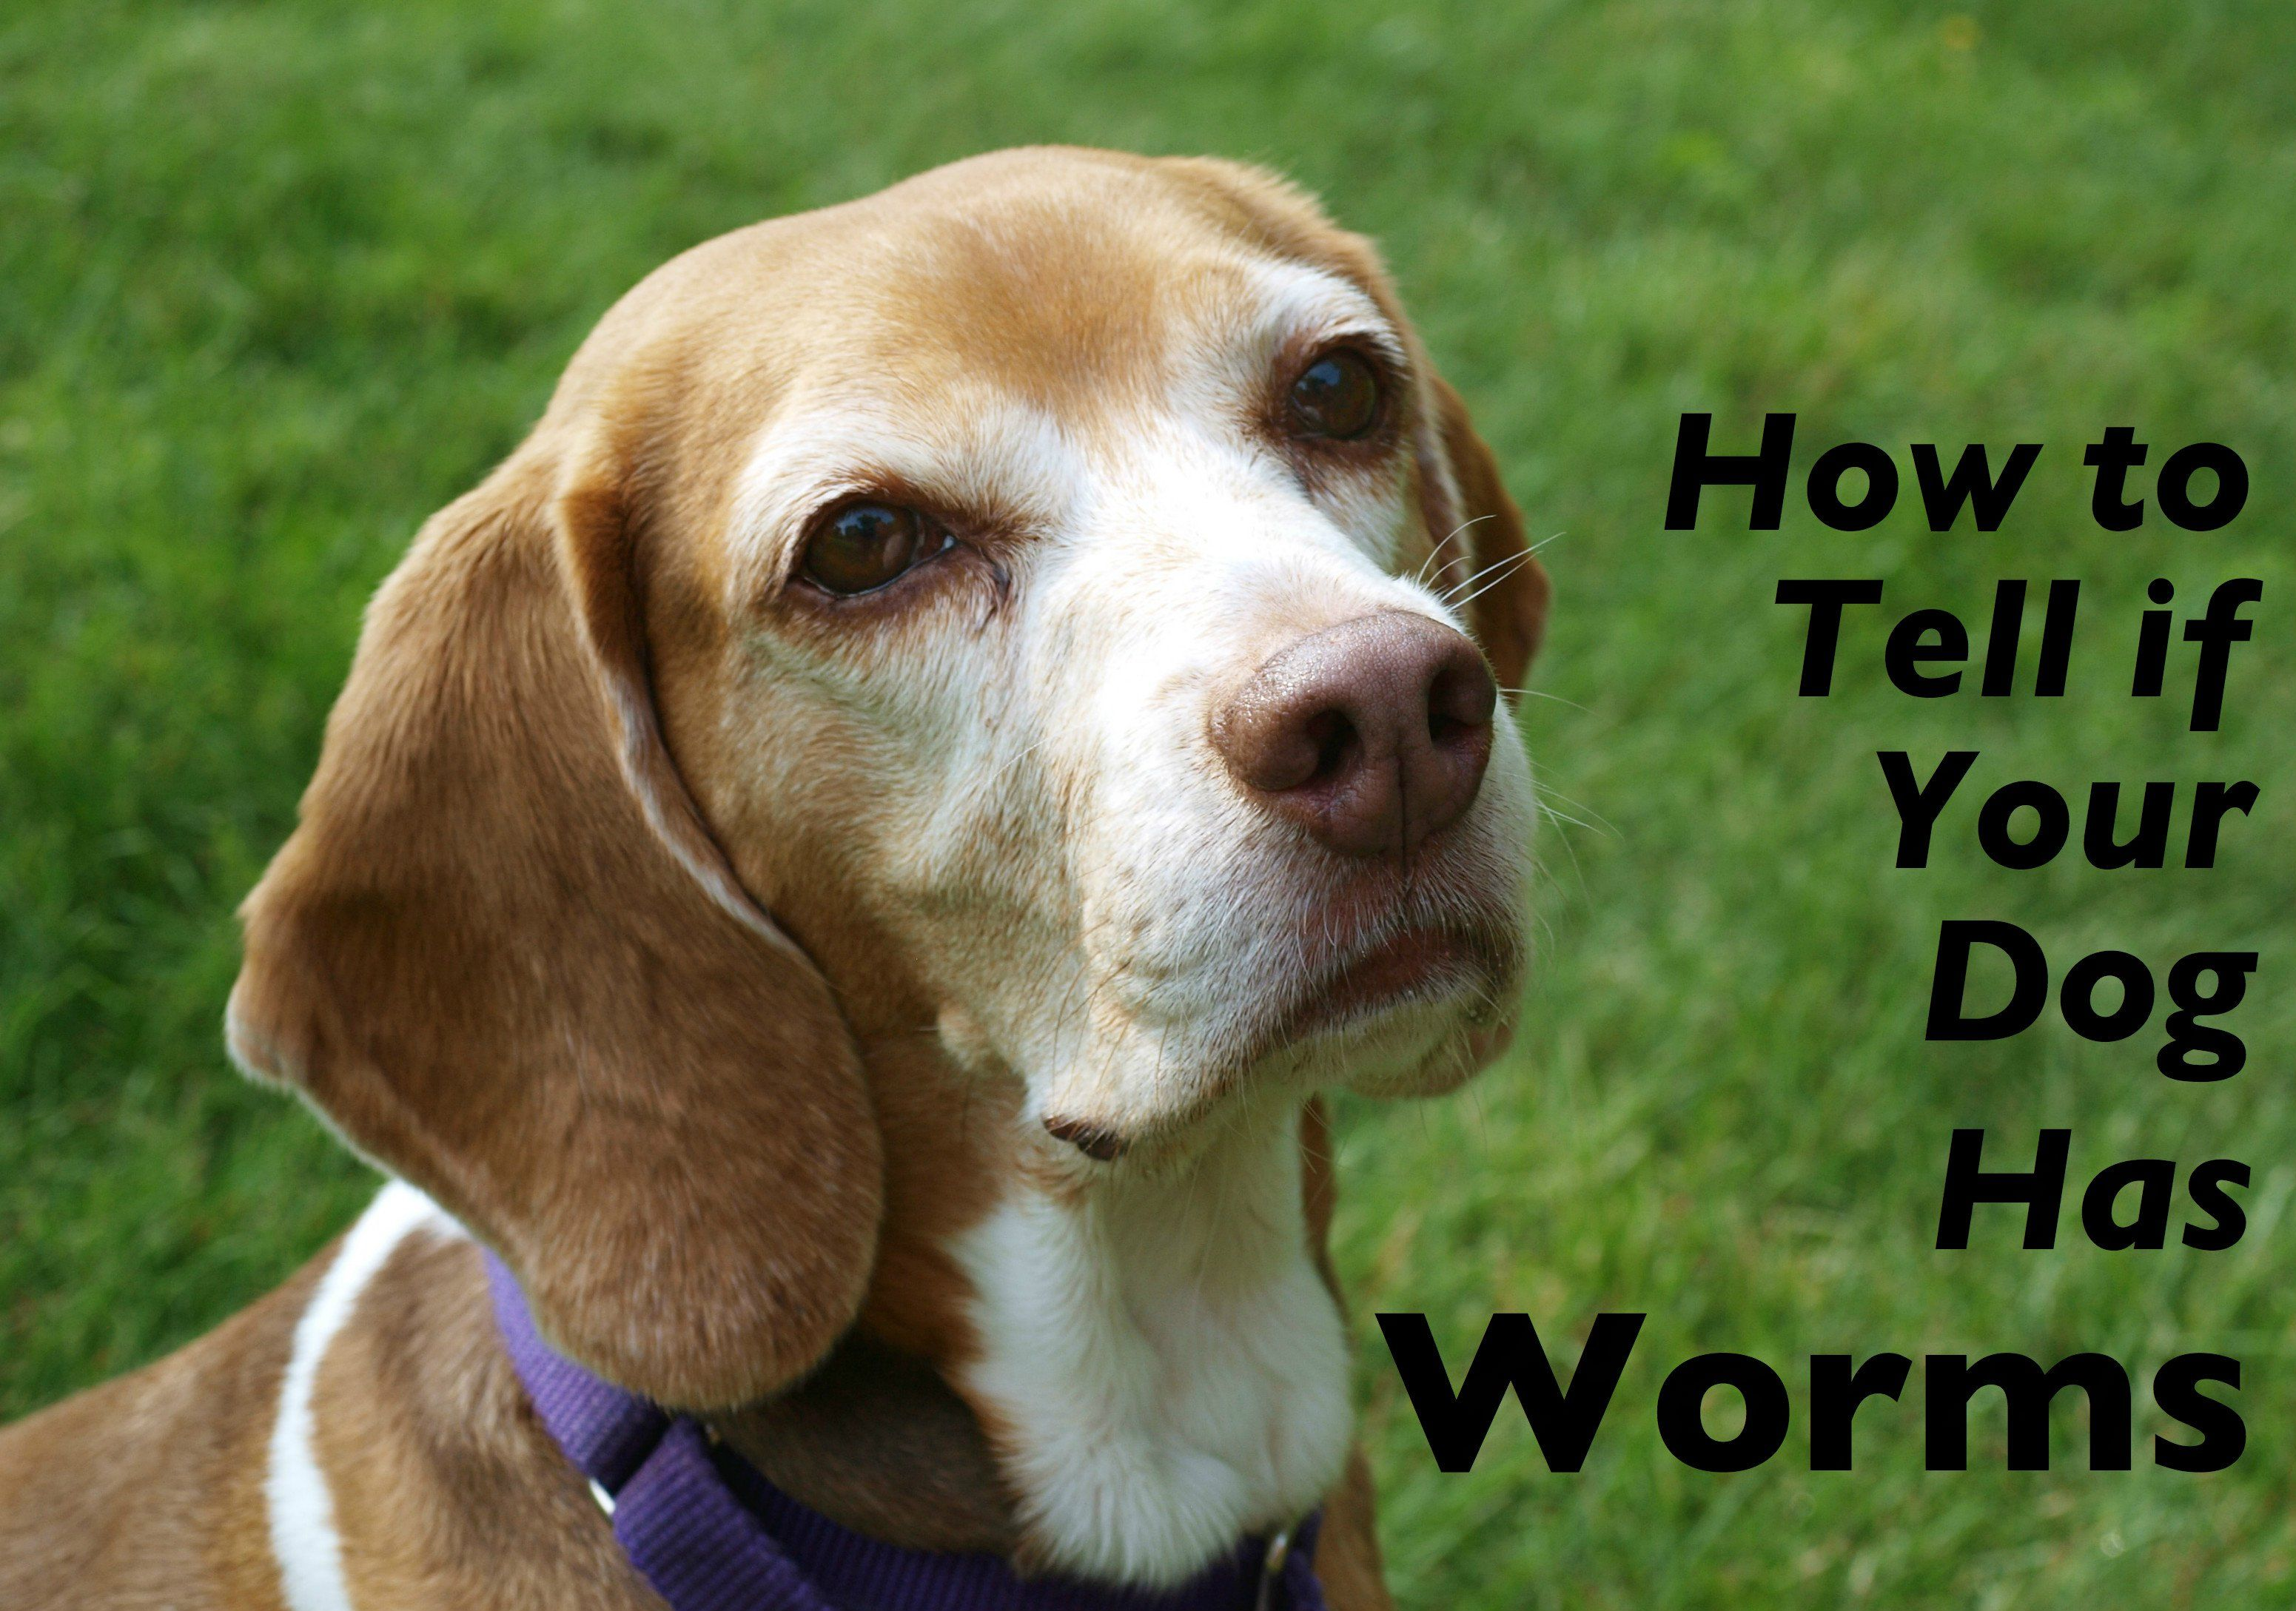 How To Tell If Your Dog Has Worms Dogs Your Dog Worms In Dogs